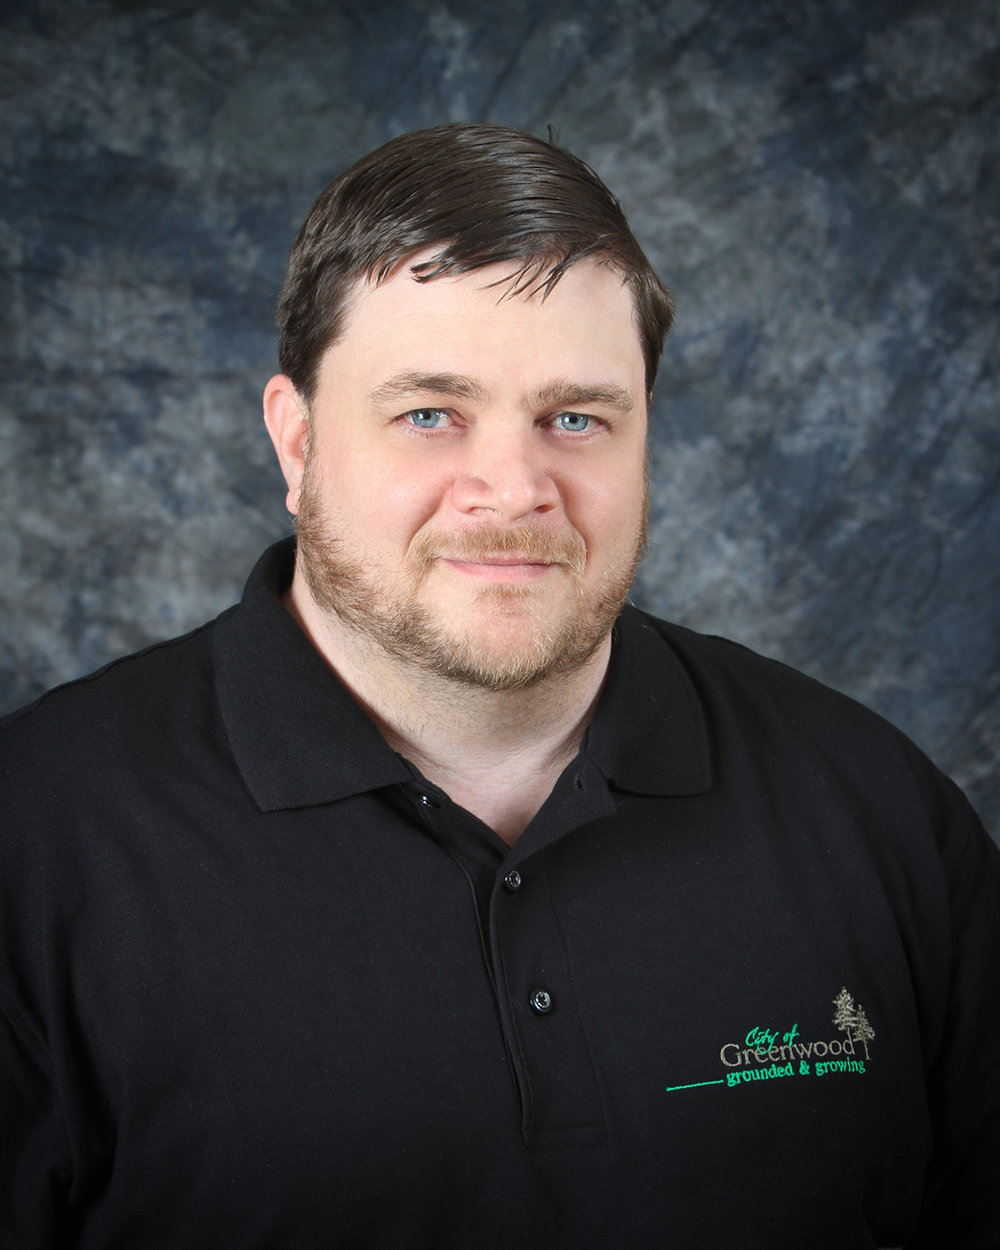 Ryan Ashbeck - Ward Two Representative  (715)267-6205  council02@greenwoodwi.com  First Elected: 2018  Current Term: 2018 - 2020